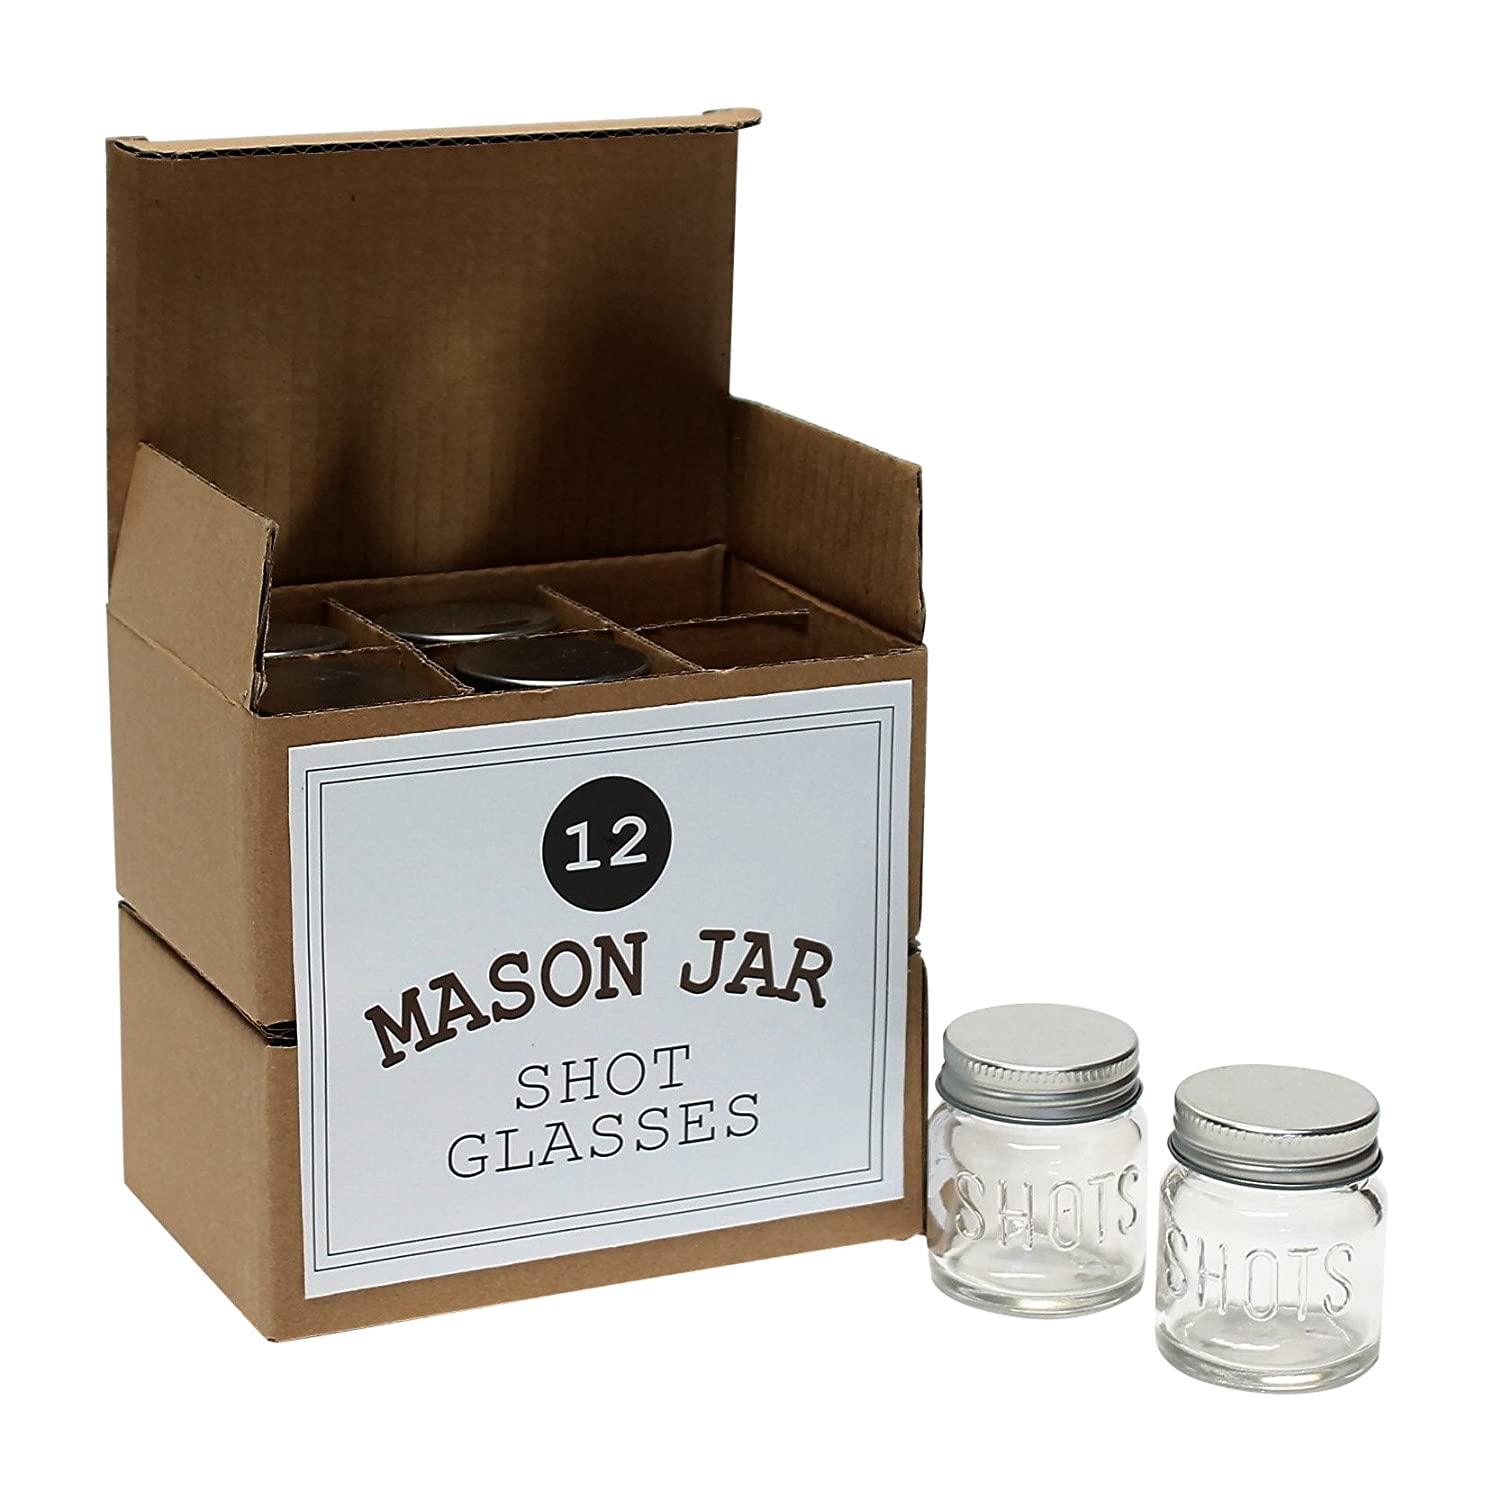 Mason Jar 2 Ounce Shot Glasses Set of 12 With Leak-Proof Lids - Great For Shots, Drinks, Favors, Candles And Crafts Mason Jar Warehouse